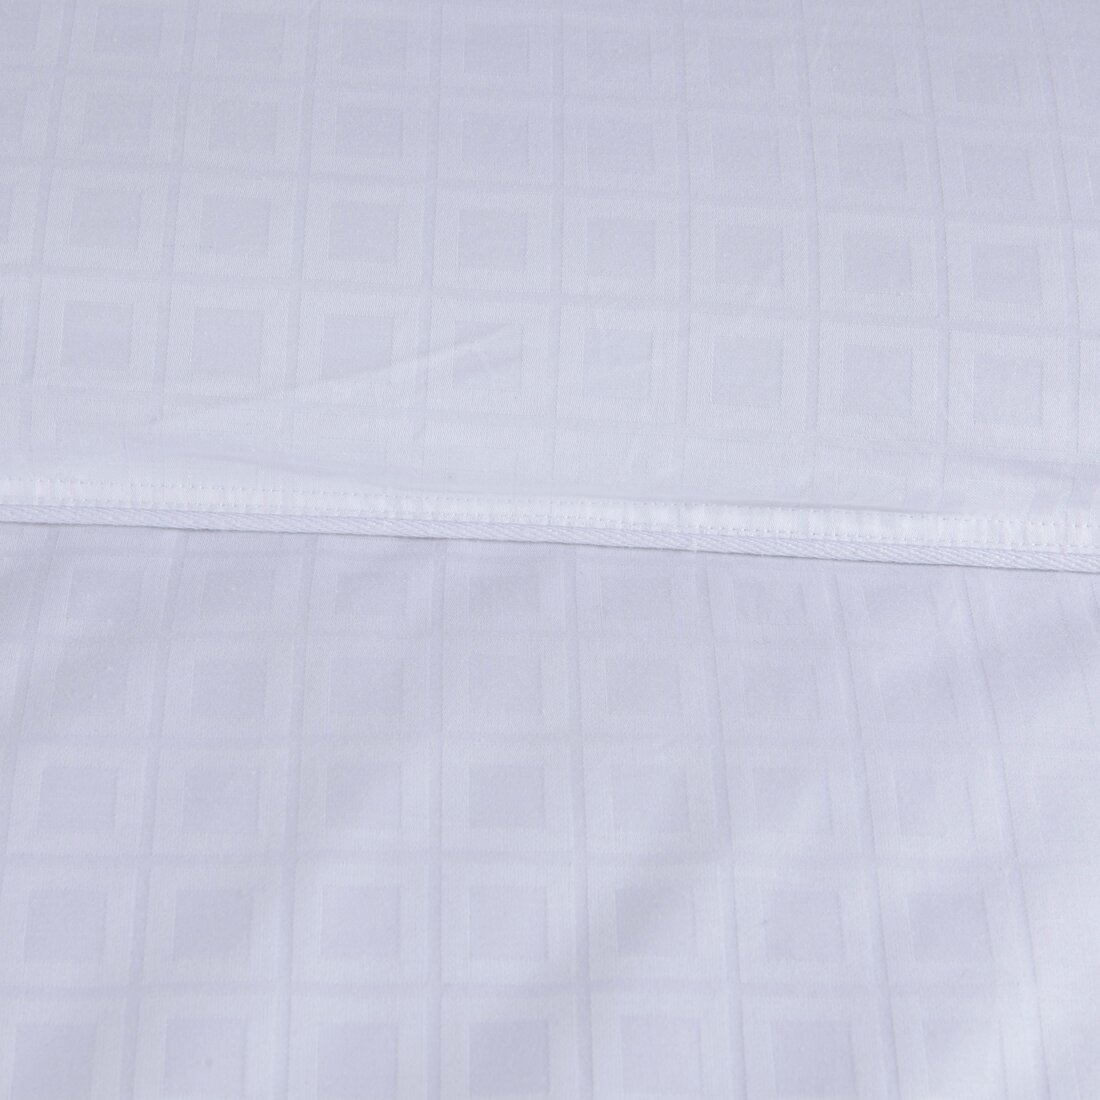 Anew Edit Lightweight Down Alternative Comforter Duvet